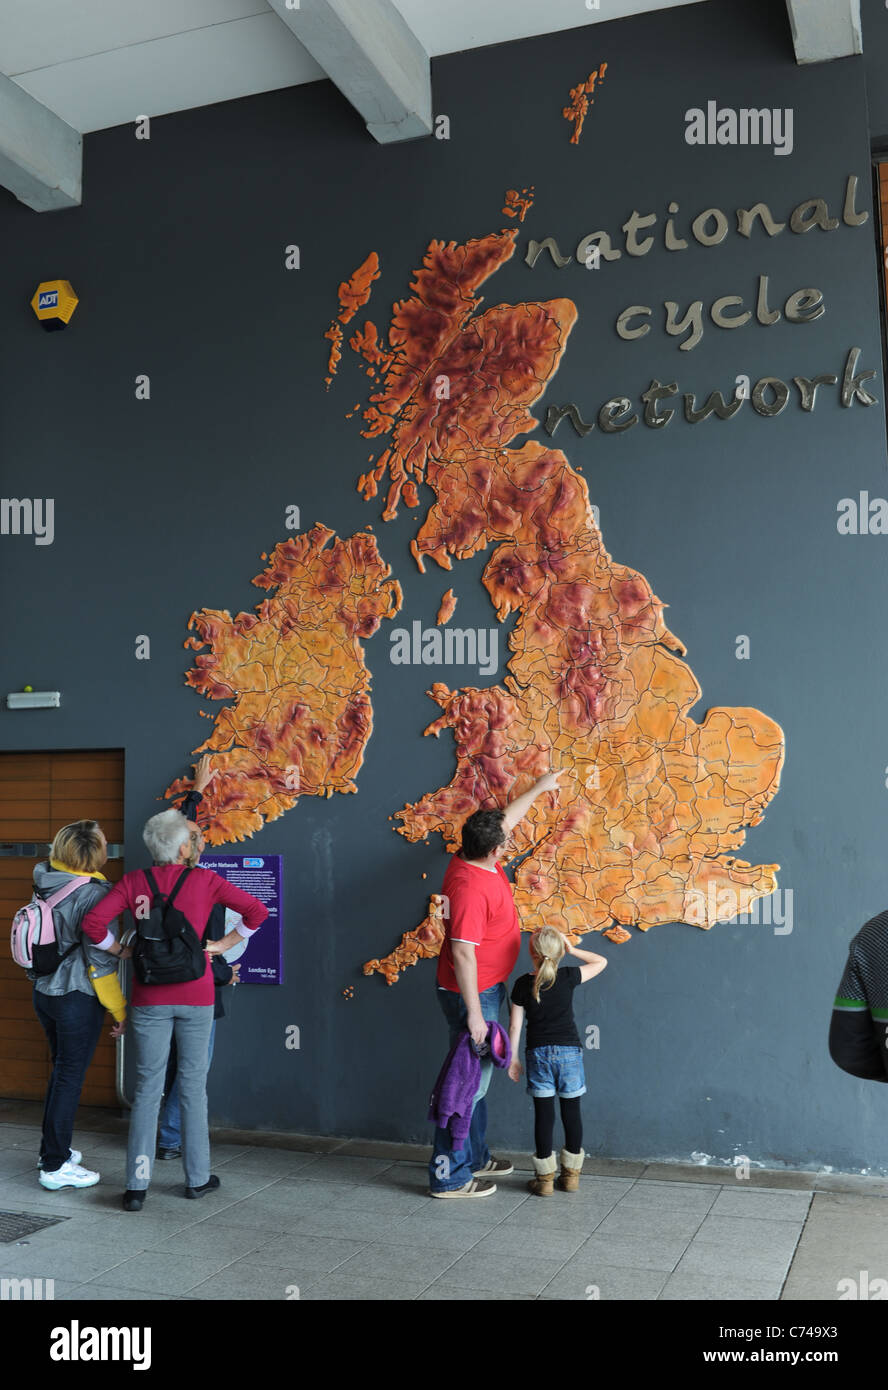 Giant map of the British National Cycle Network at Bristol harbour city centre UK - Stock Image